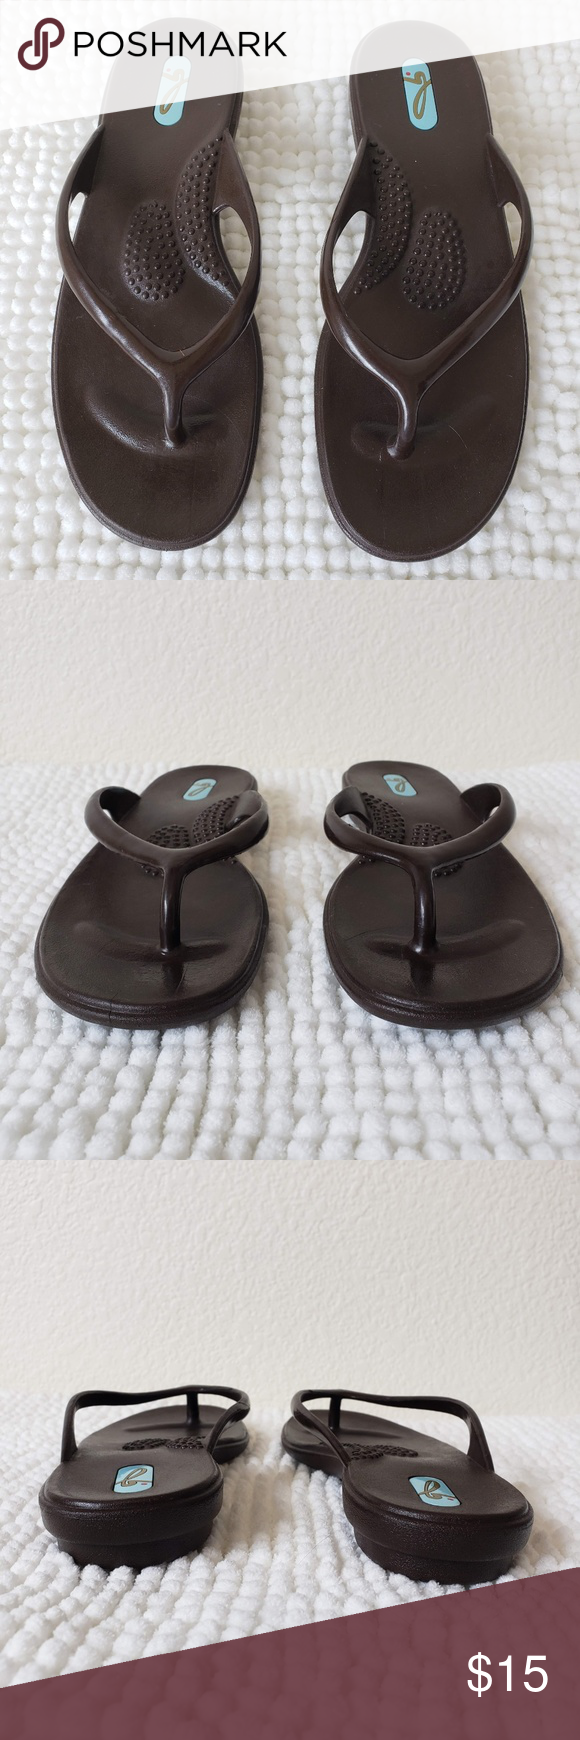 897e09d8472bf3 OKA b. Flip Flops Thong Sandals Brown Size 6 Brand  OKA b. Size  Small  (fits women s 5.5-6.5) Color  Brown Condition  In very good used condition!